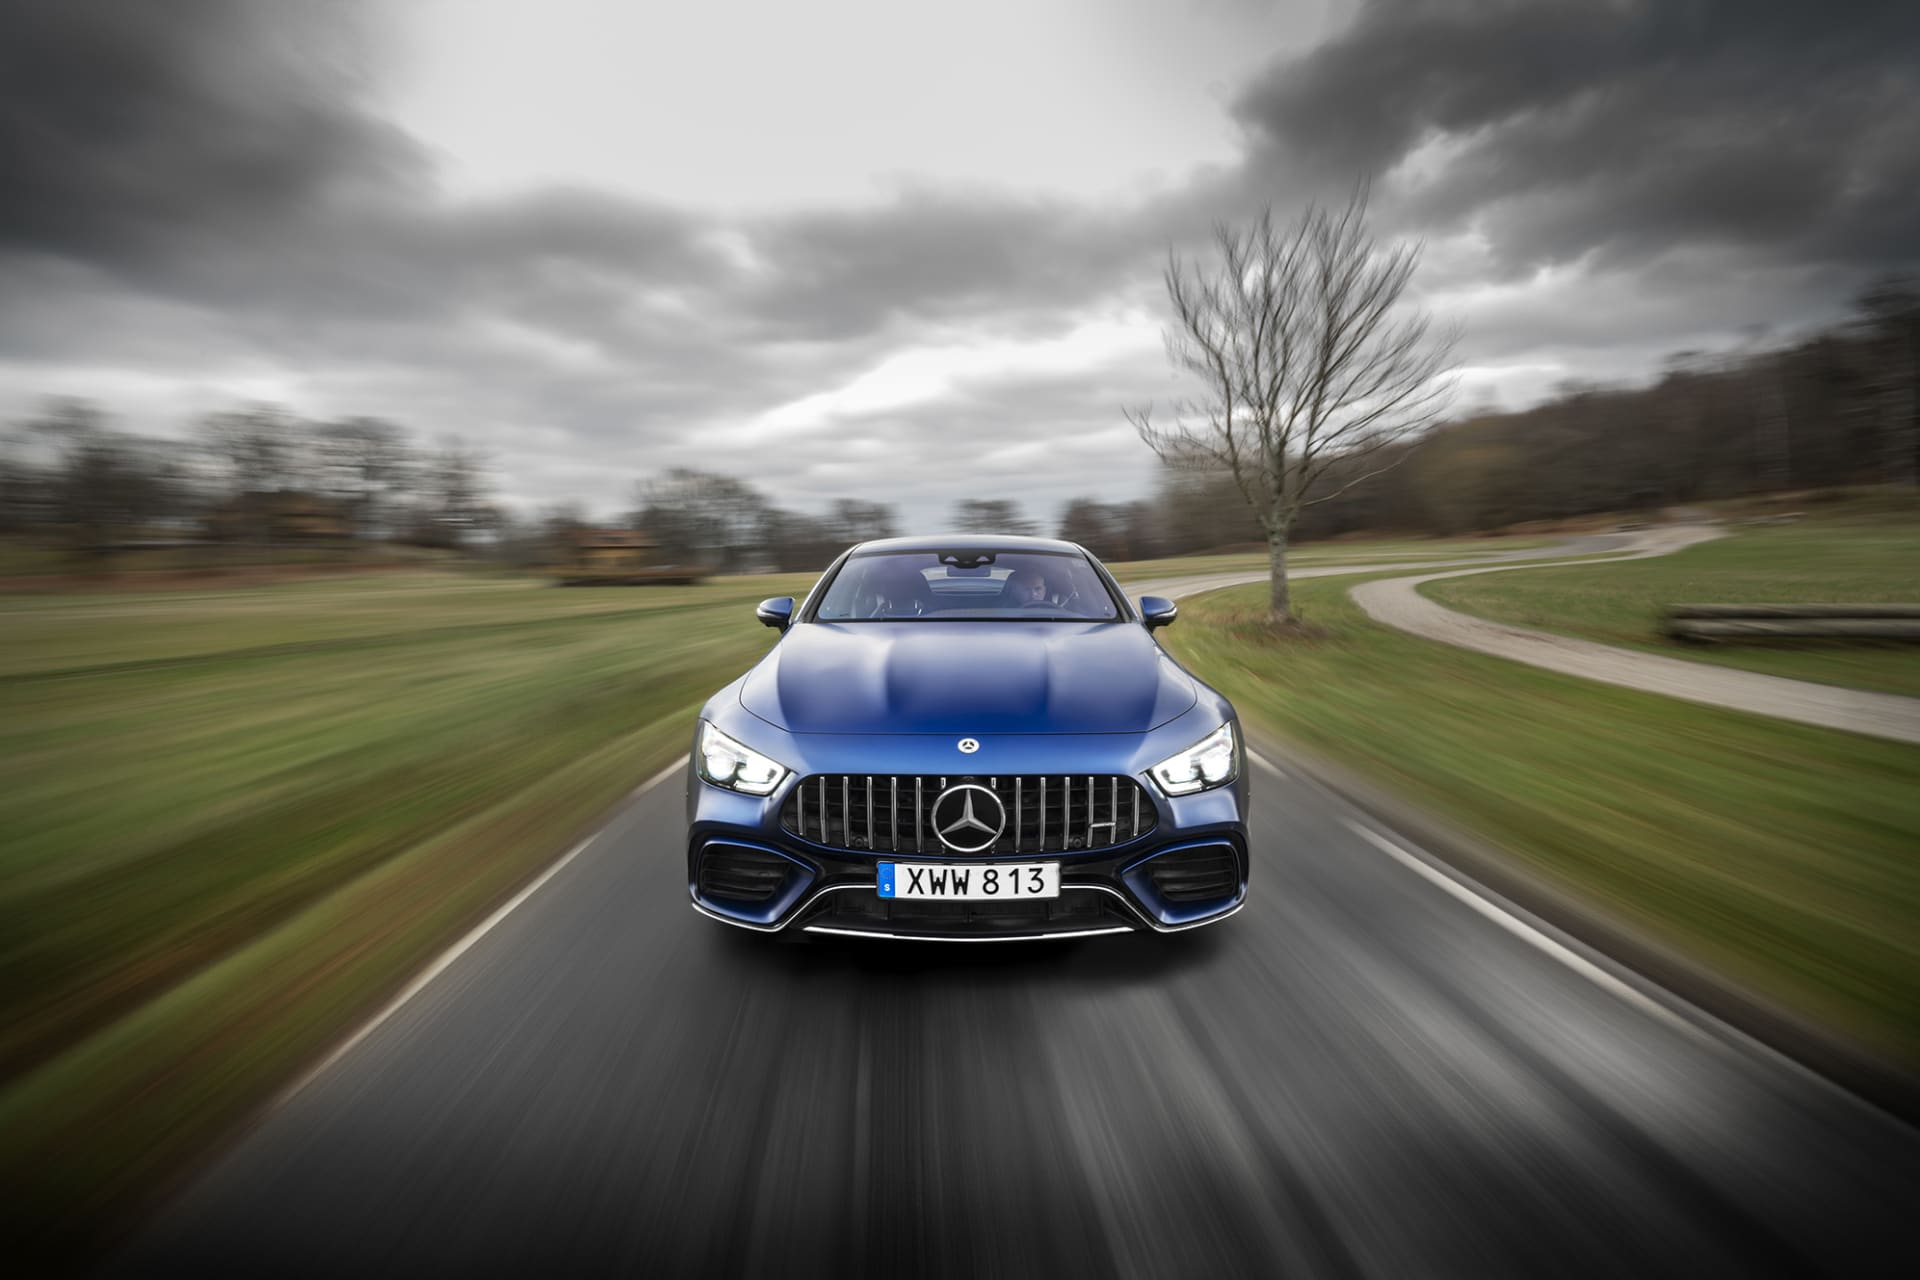 The angry grill on the AMG GT63s gives great respect. If you have this view in the rear view mirror, you are in the wrong lane - keep to the right.